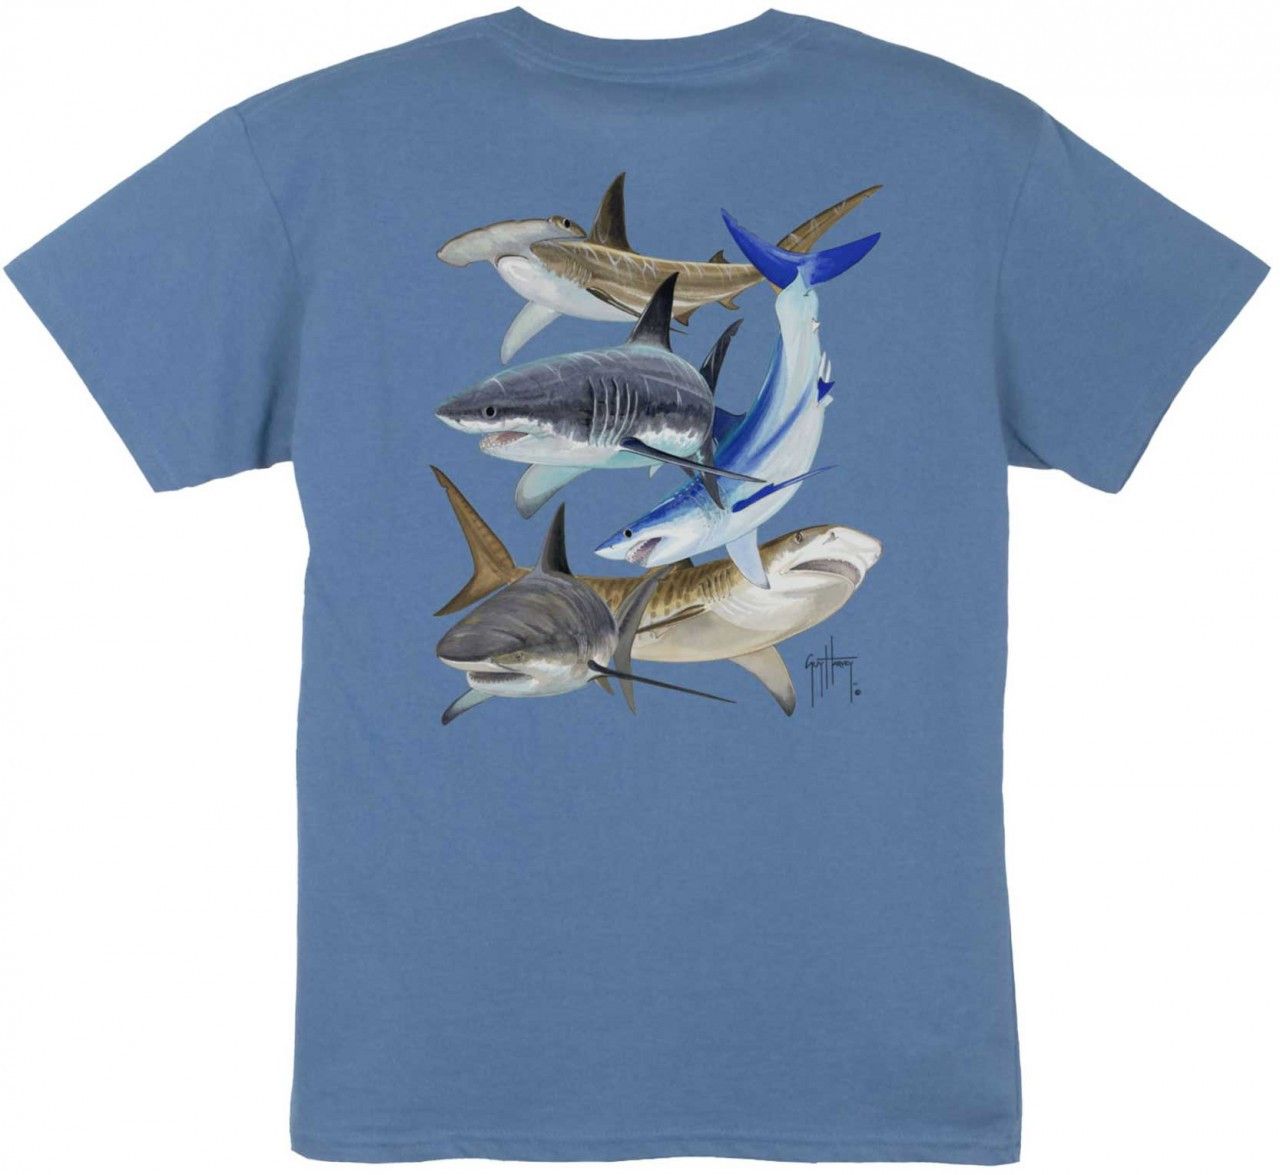 8dbf31e4 Guy Harvey Shark Collage Boys Tee Shirt in Denim Blue, White or Red.  $15.00. See 3 more pictures